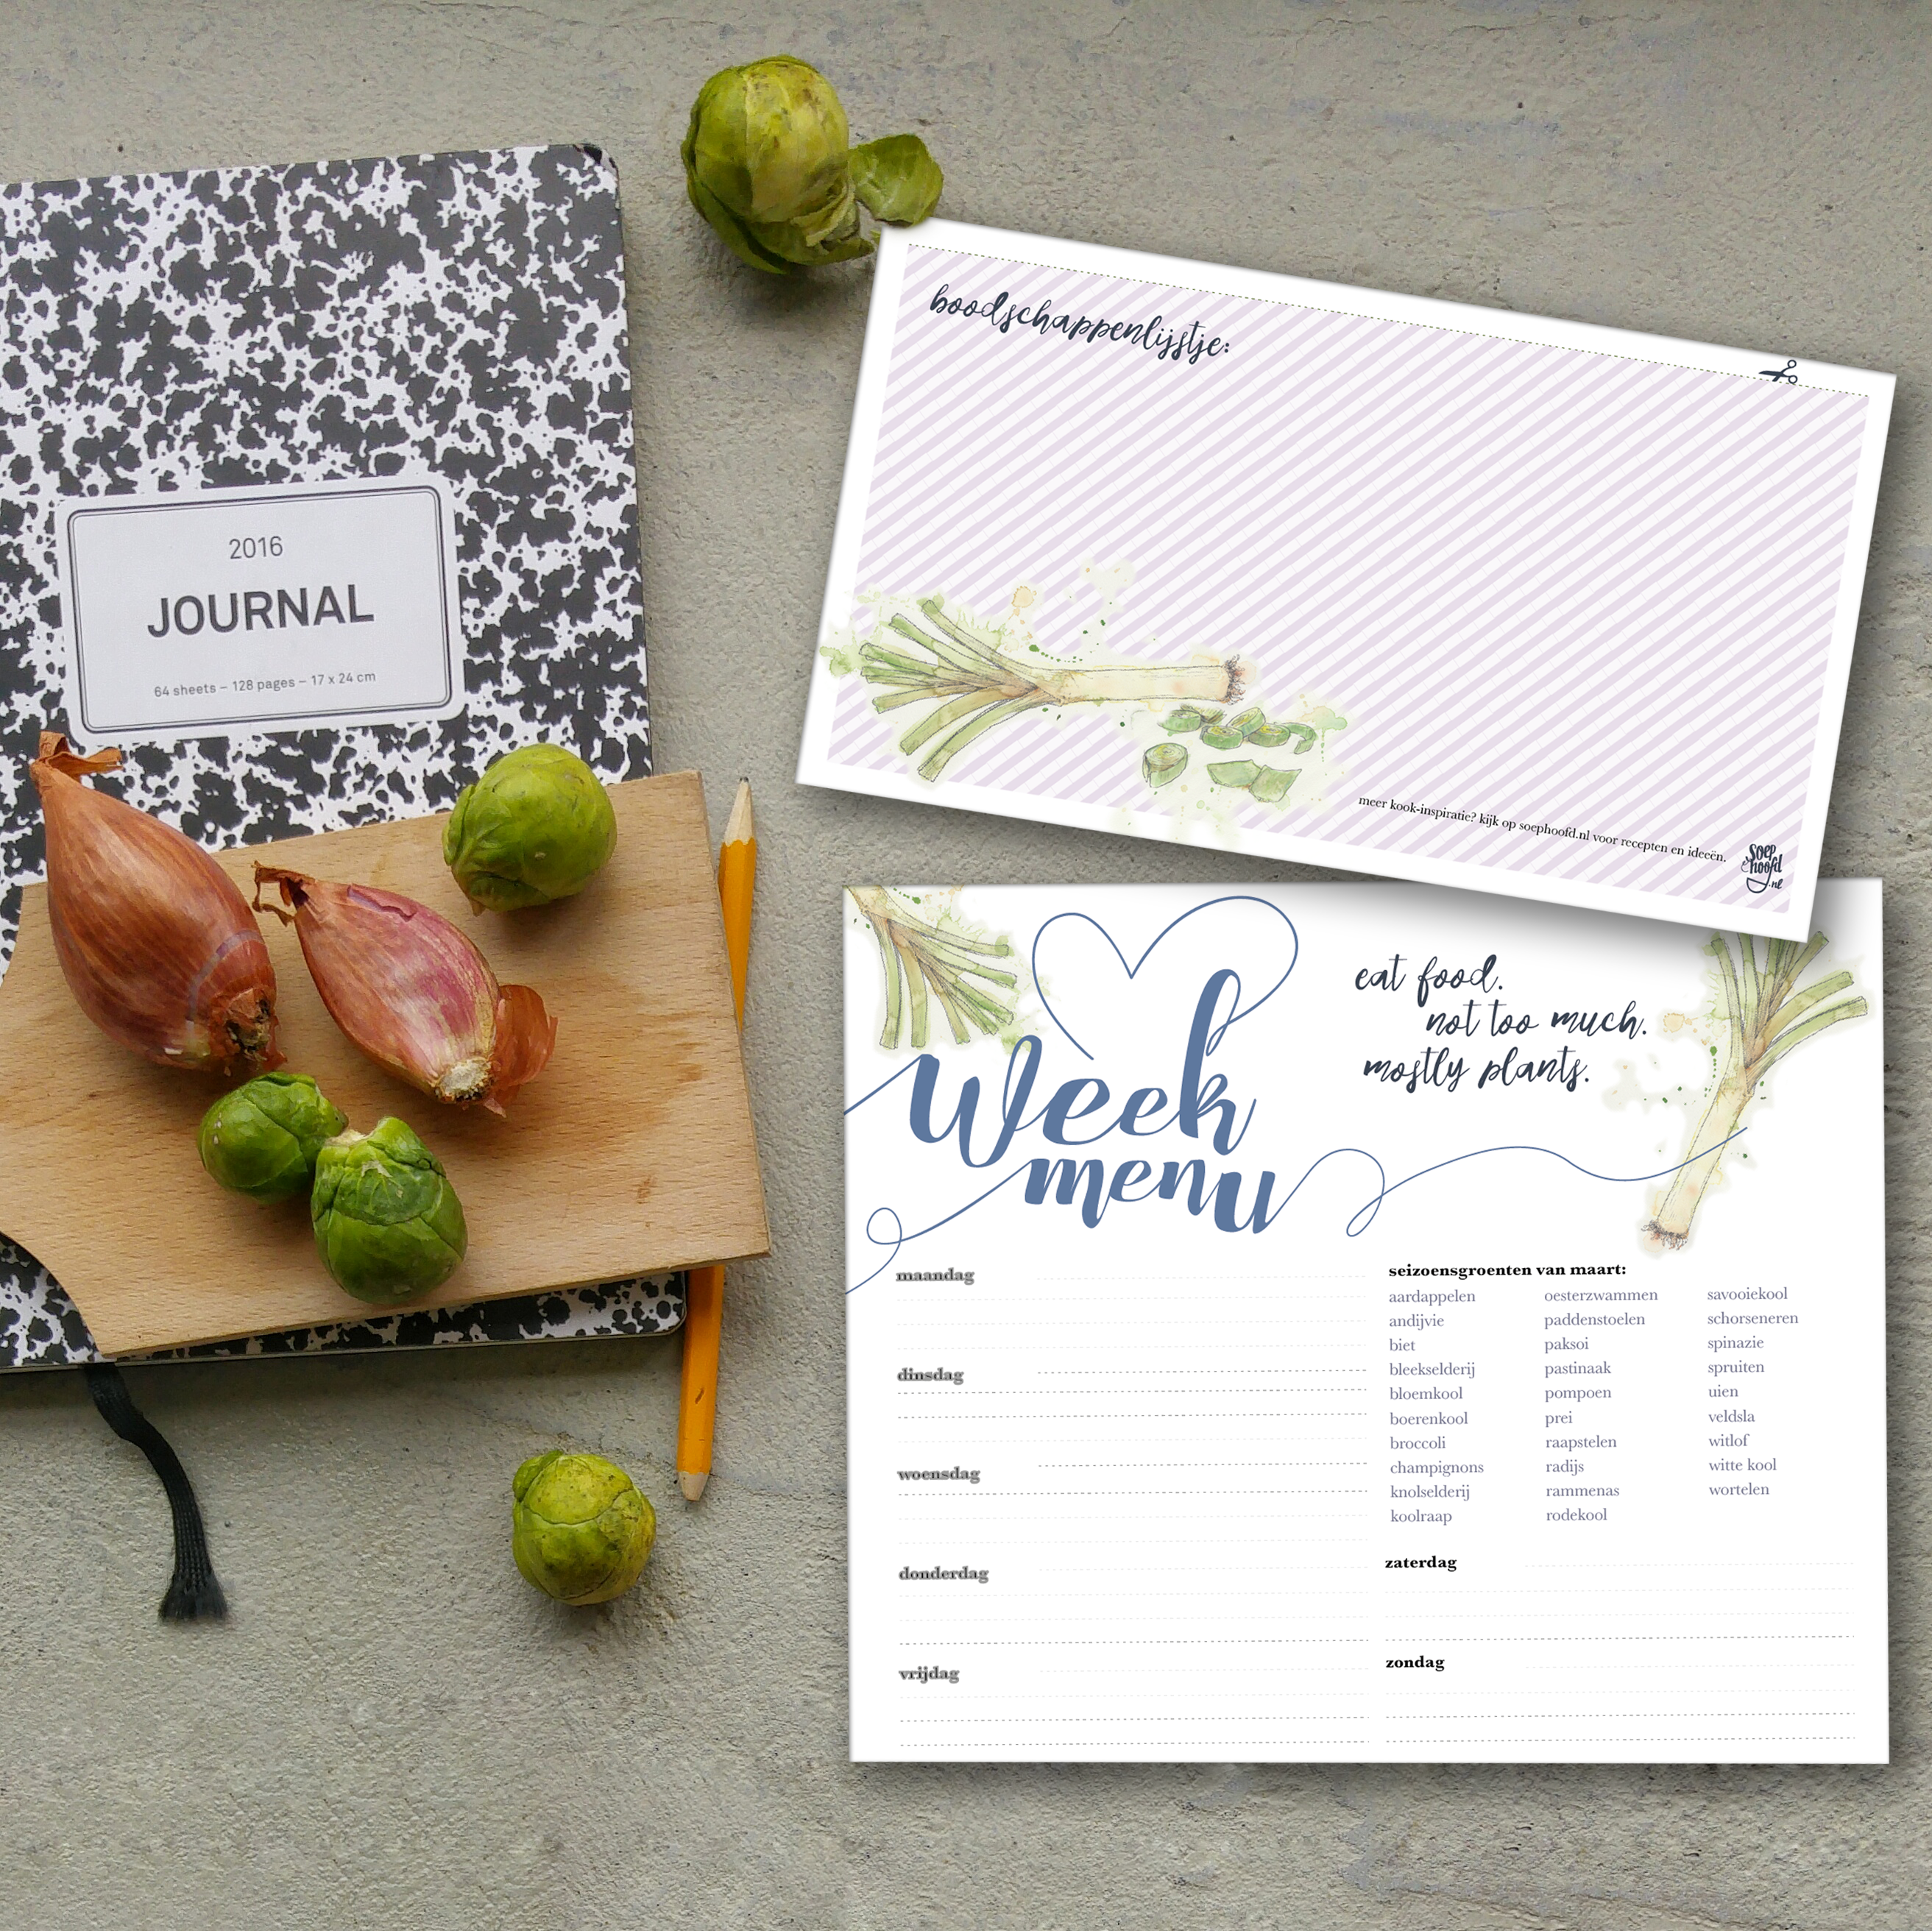 week menu planner maart download